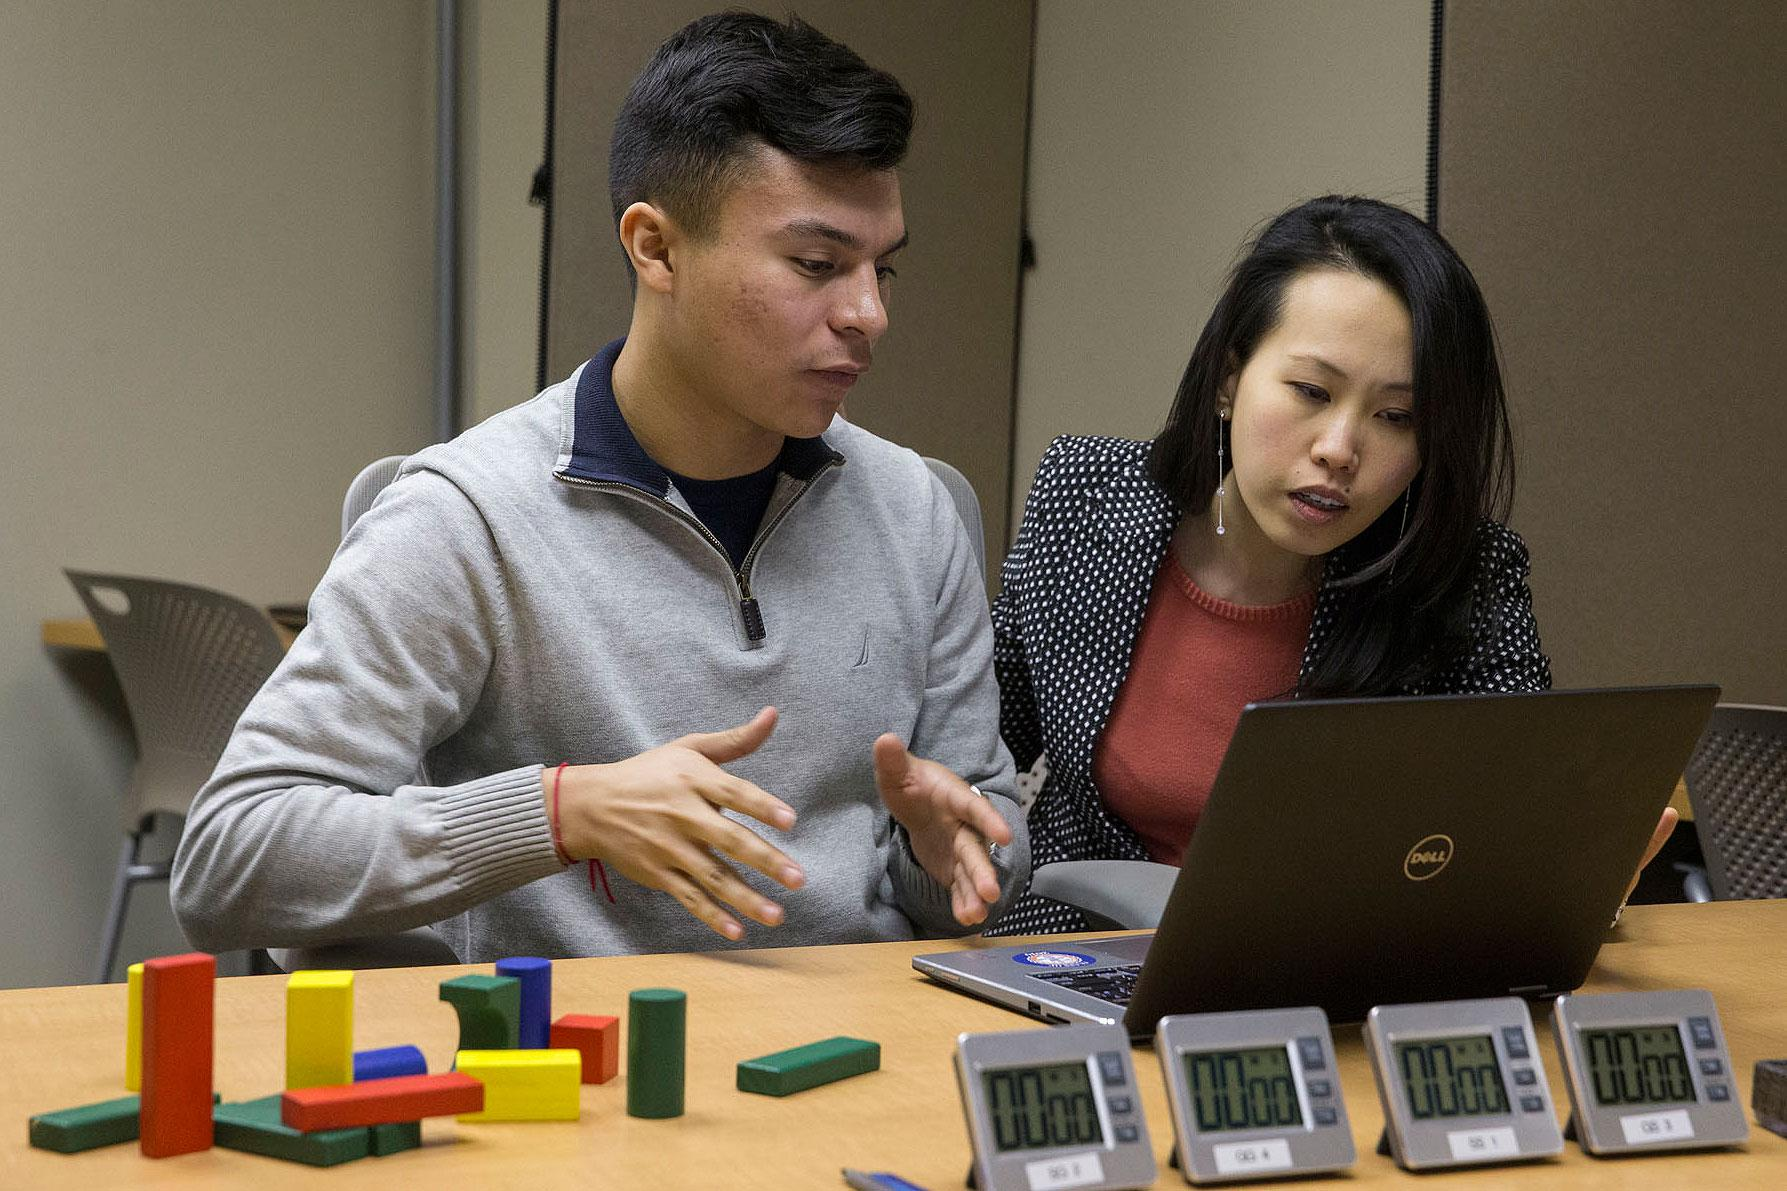 First-year College of Arts & Sciences student Hector Quijano is working with Eileen Chou, an assistant professor in the Batten School of Leadership and Public Policy, to research leadership and organizational behavior. (Photo by Dan Addison)